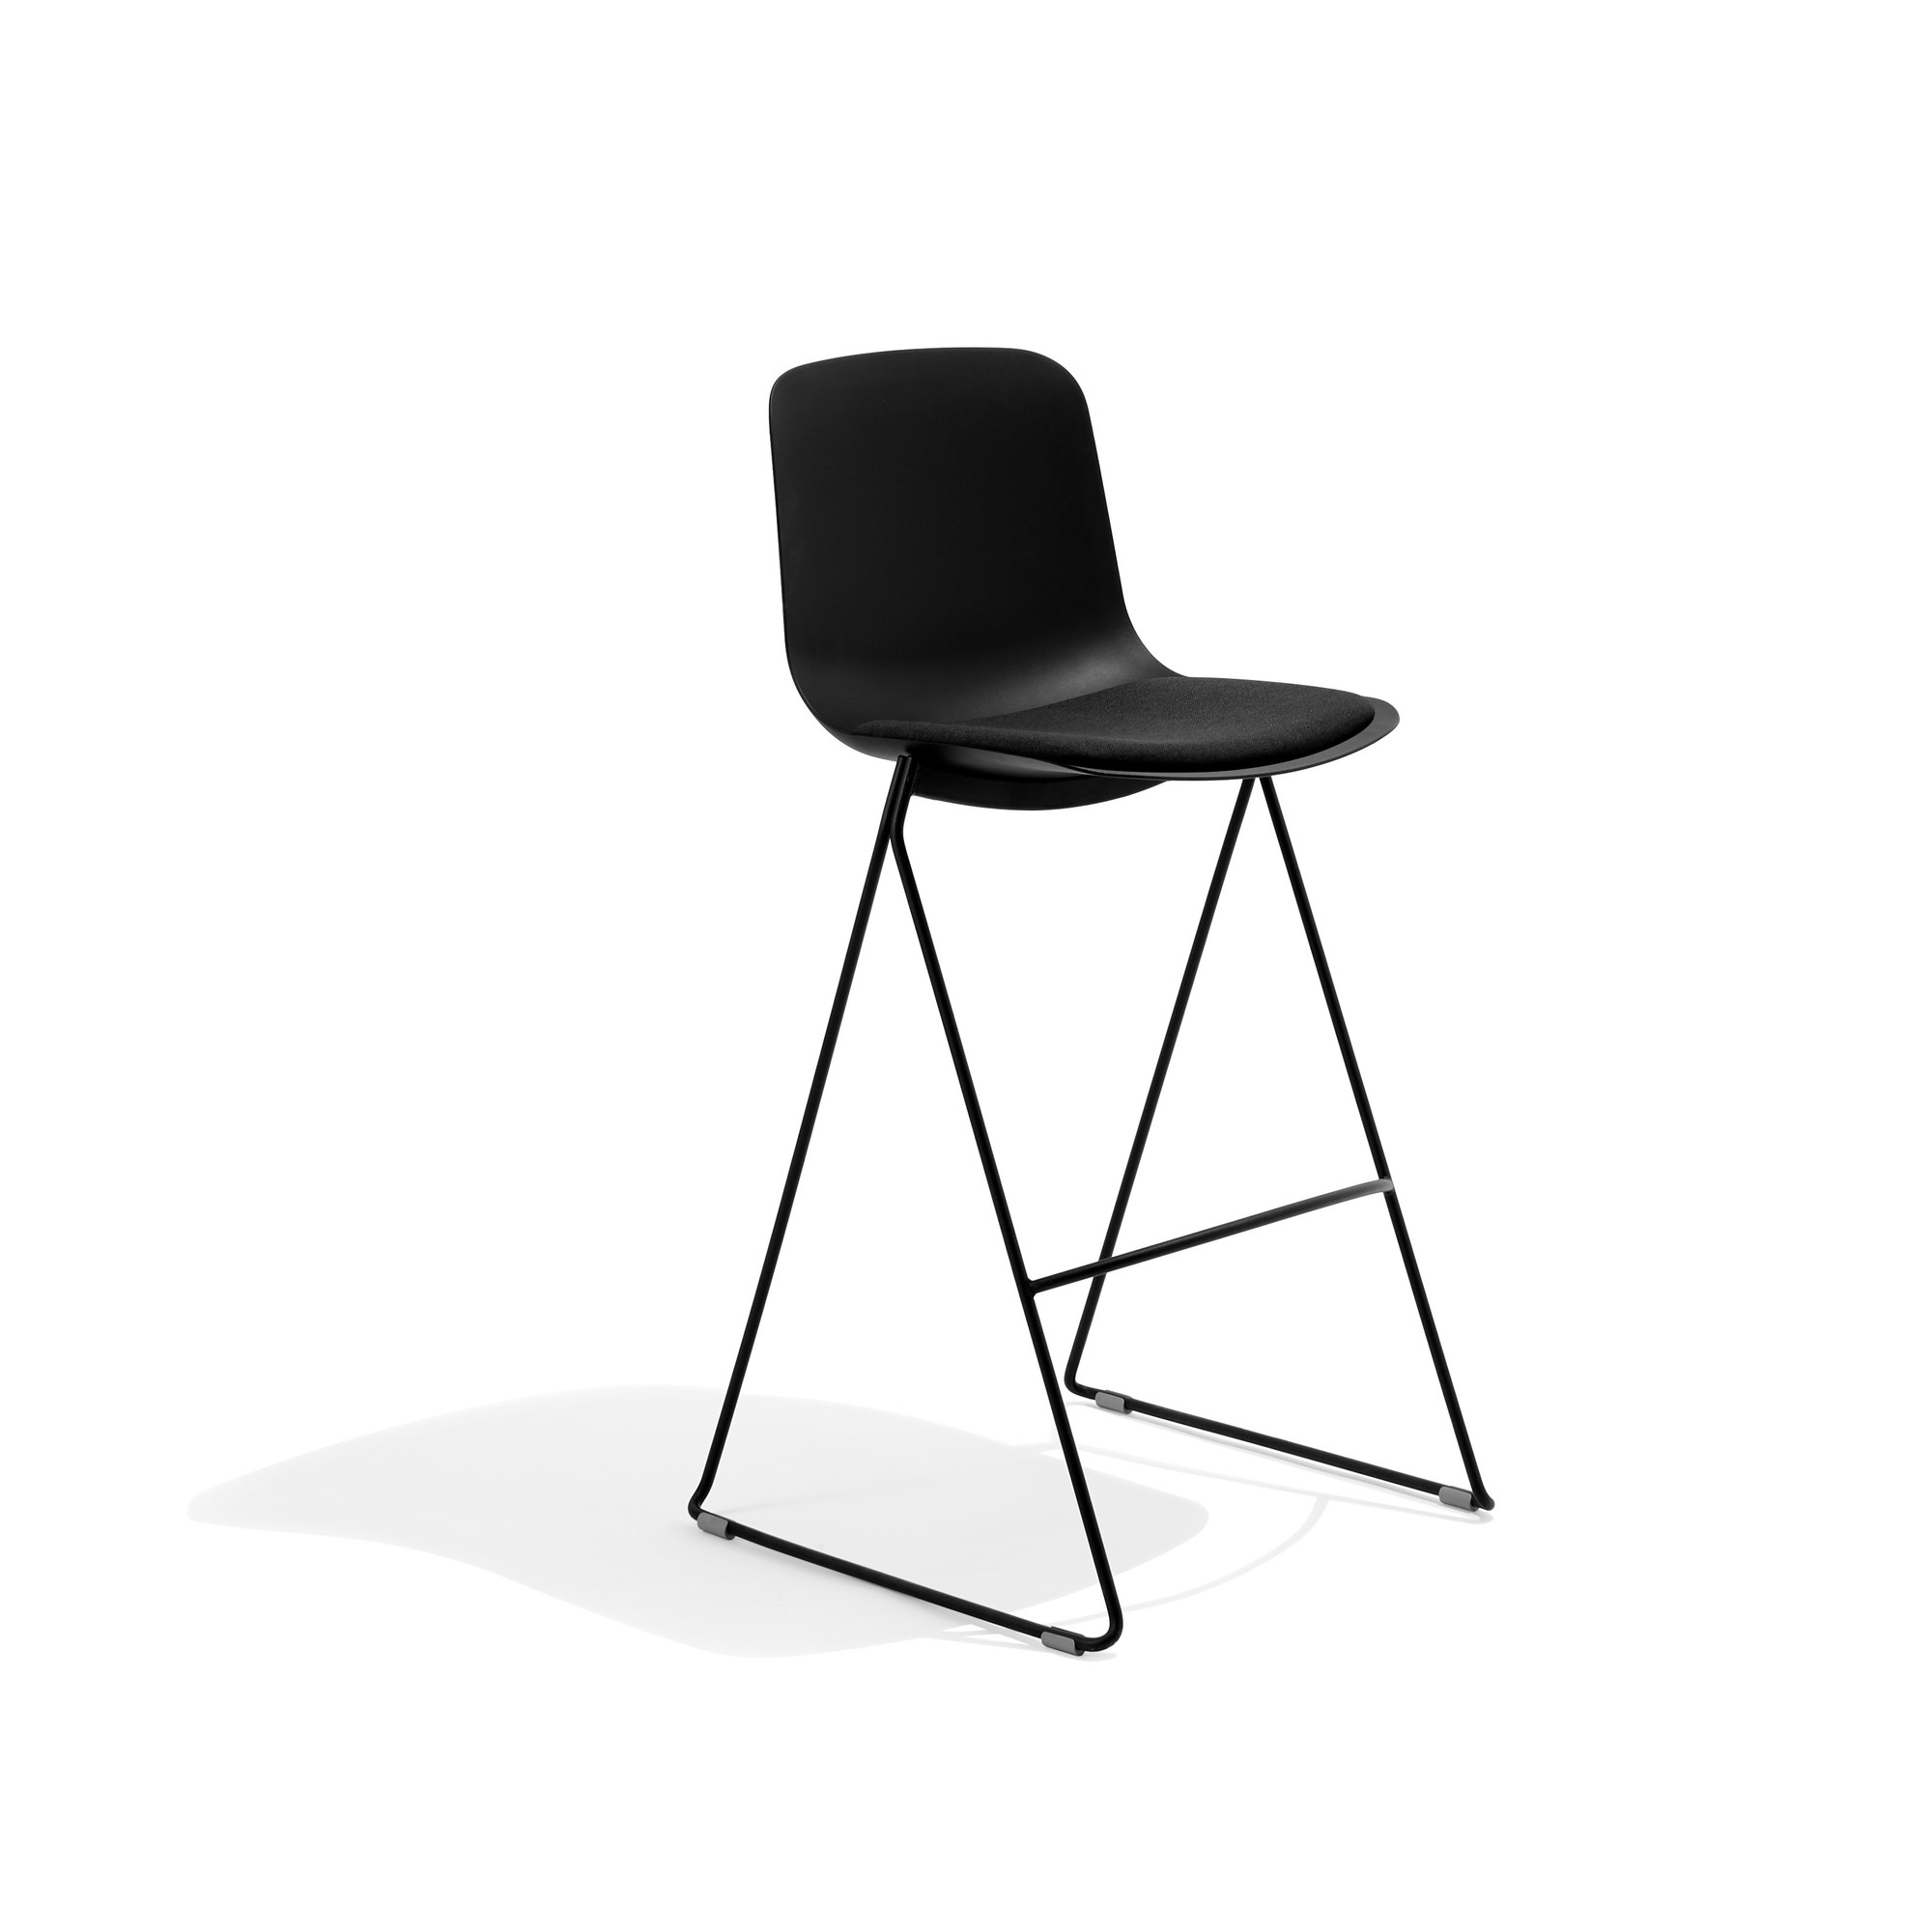 Miraculous Black Key Stool Set Of 2 With Charcoal Seat Pad Office Chairs Poppin Machost Co Dining Chair Design Ideas Machostcouk